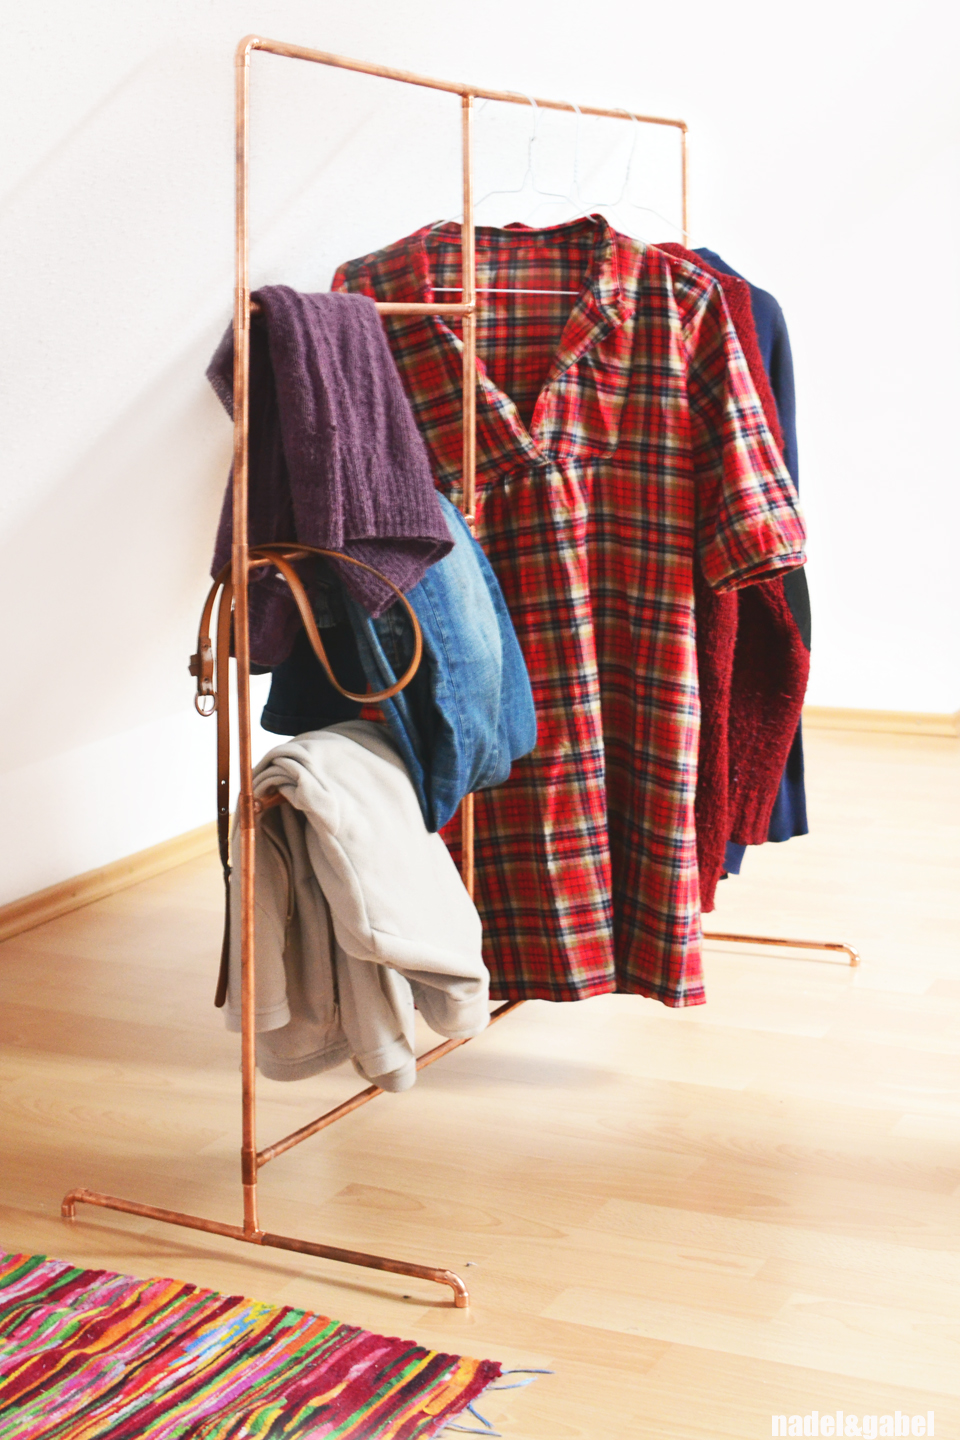 Uncategorized The Clothes Rack copper diy clothes rack from pipes nadelgabel 3 the materials i needed